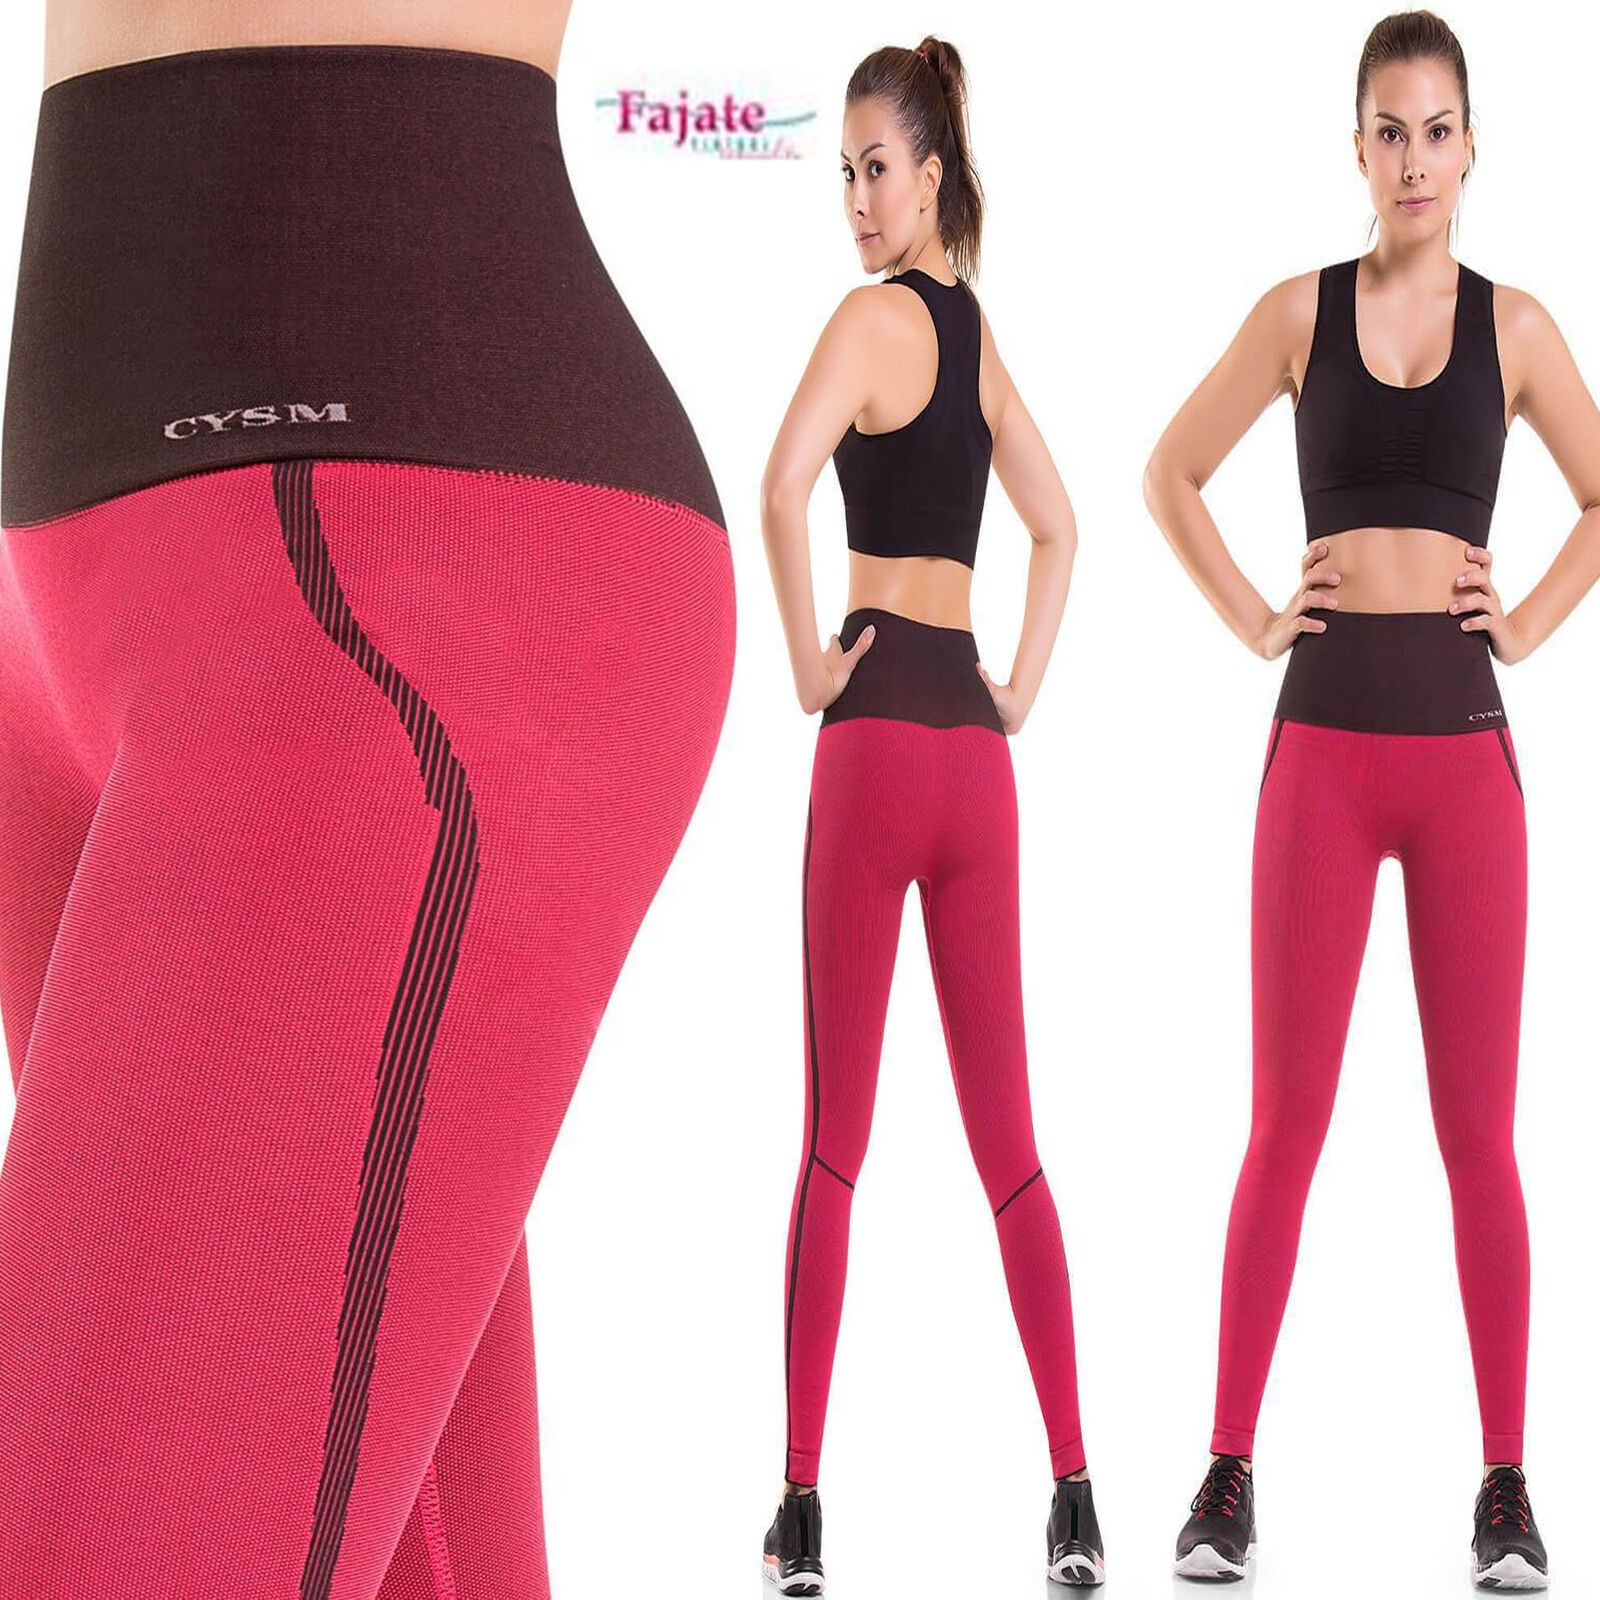 Colombian Sports Compression and Abdomen Control Fit Legging Coral Butt Lifter